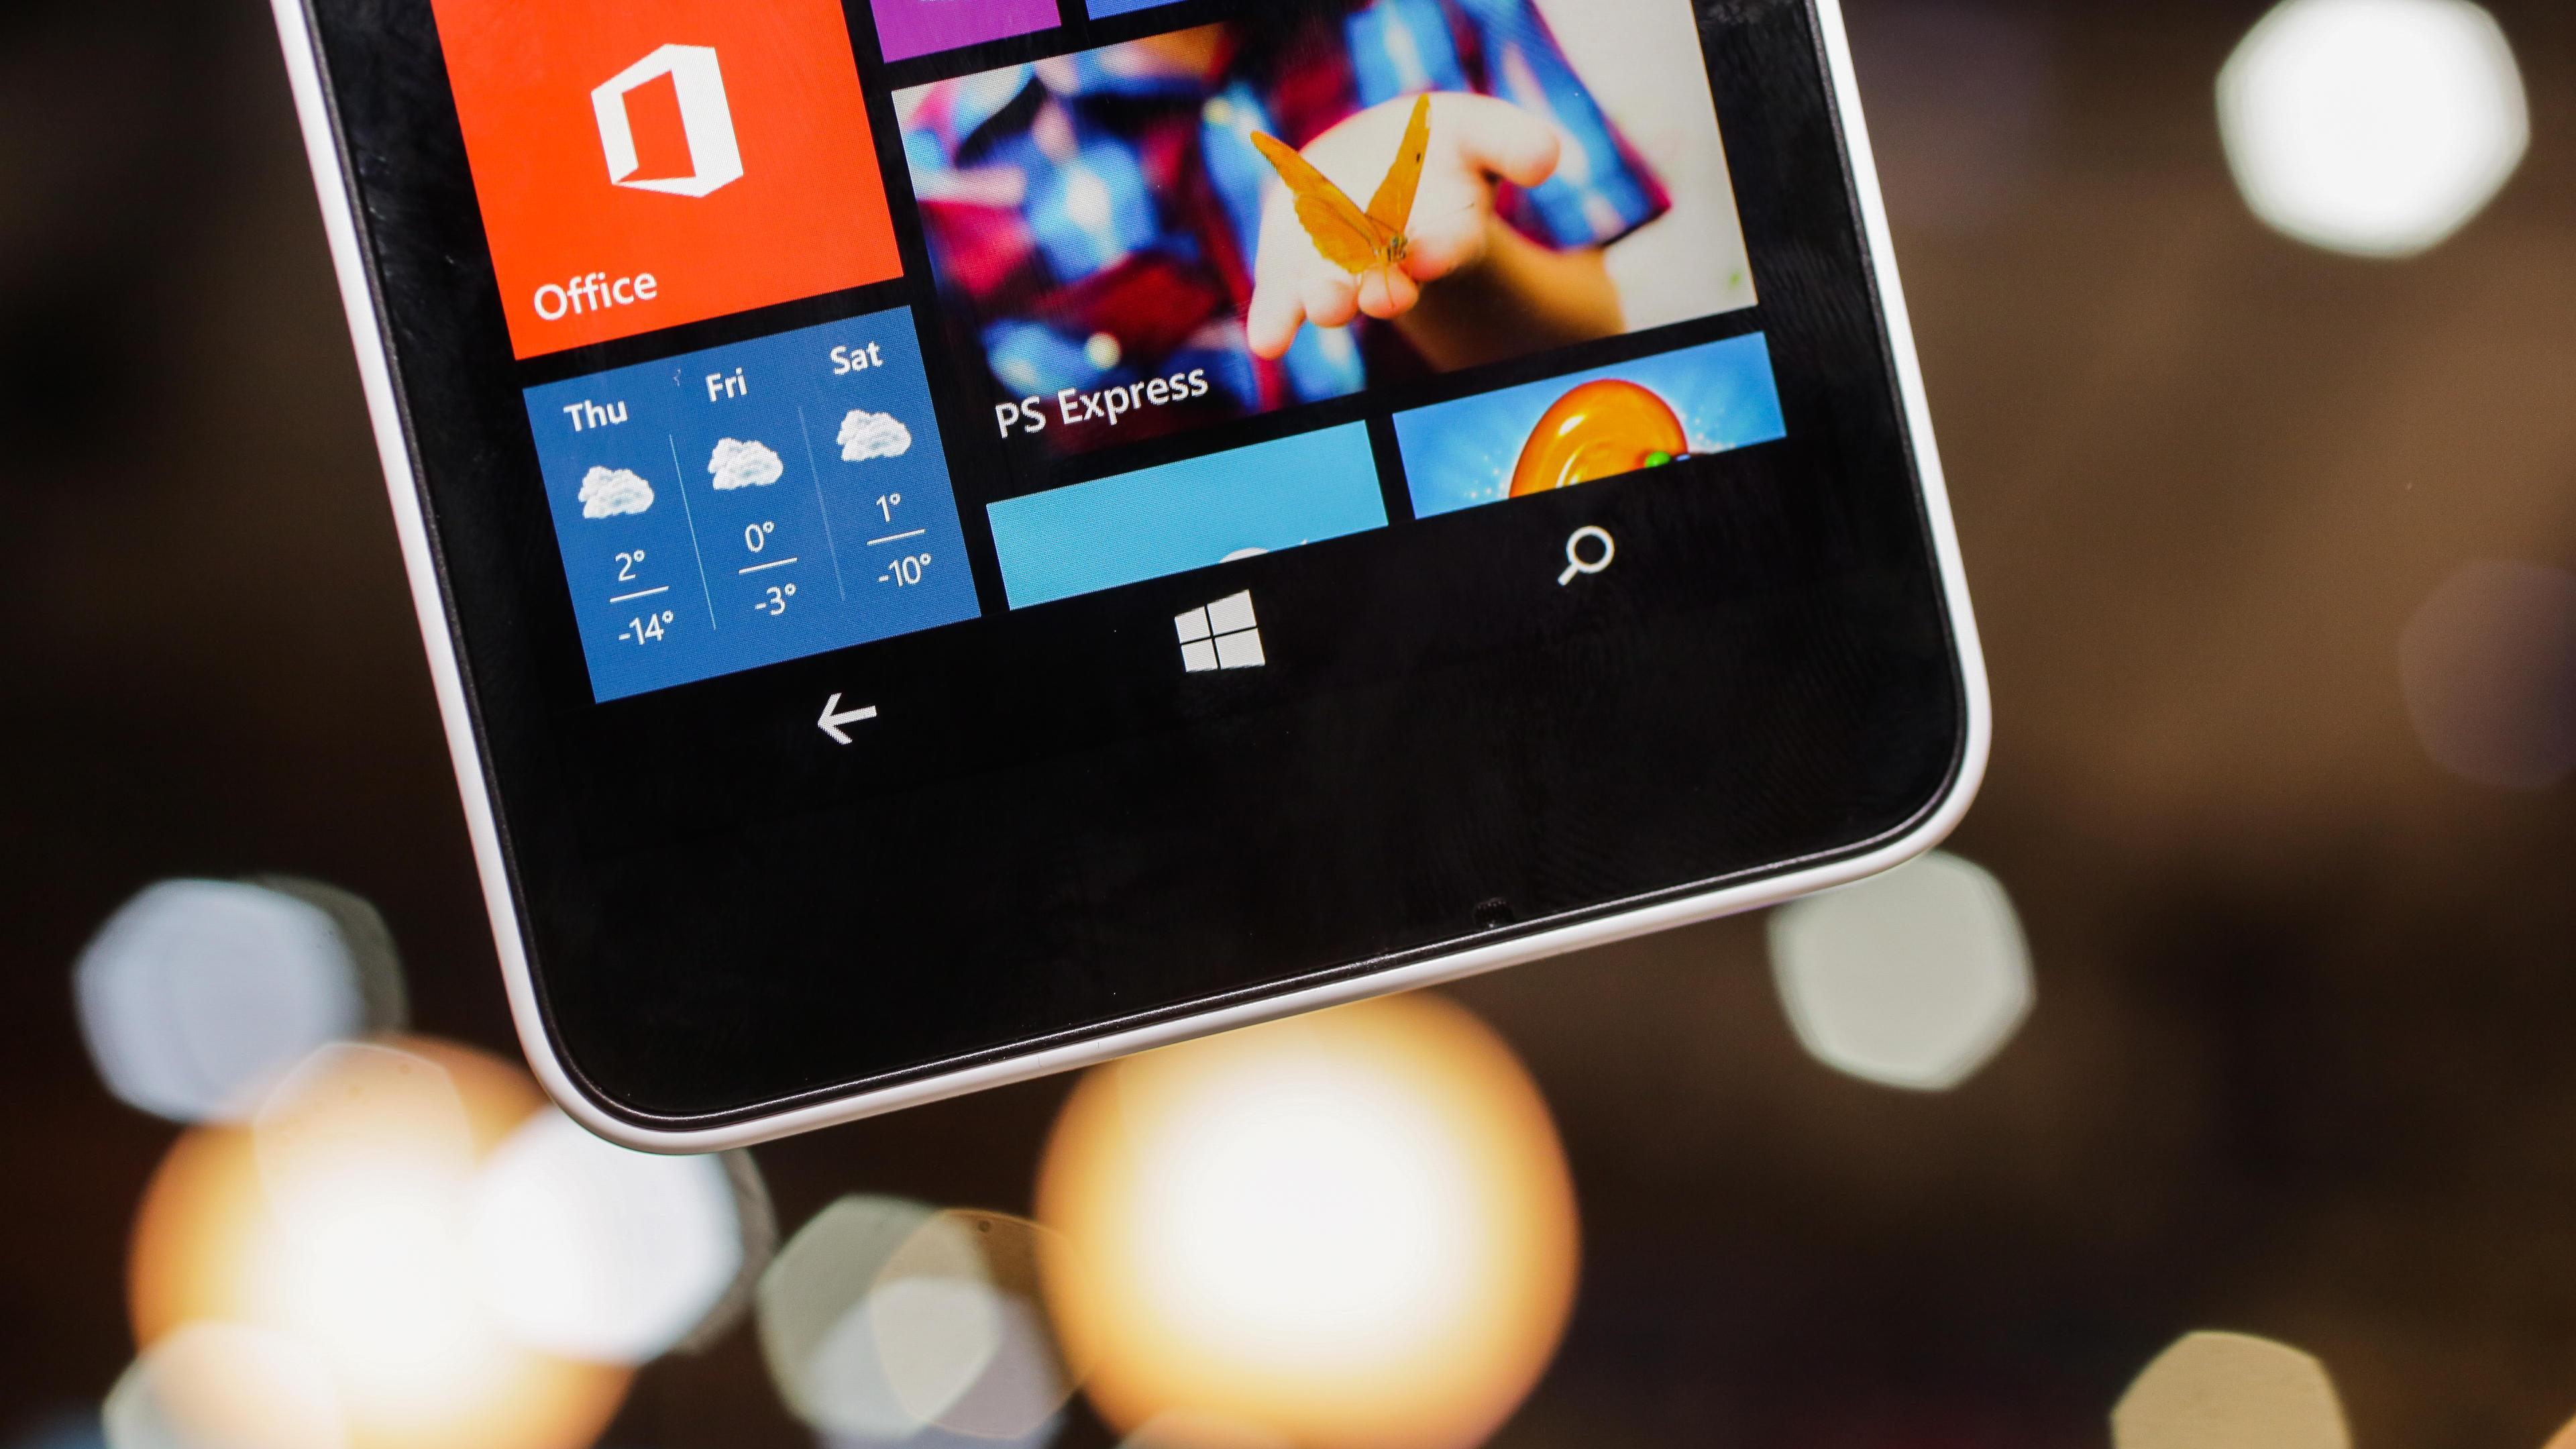 Does Surface Pro 3 offer clues to Microsoft's next flagship phone?